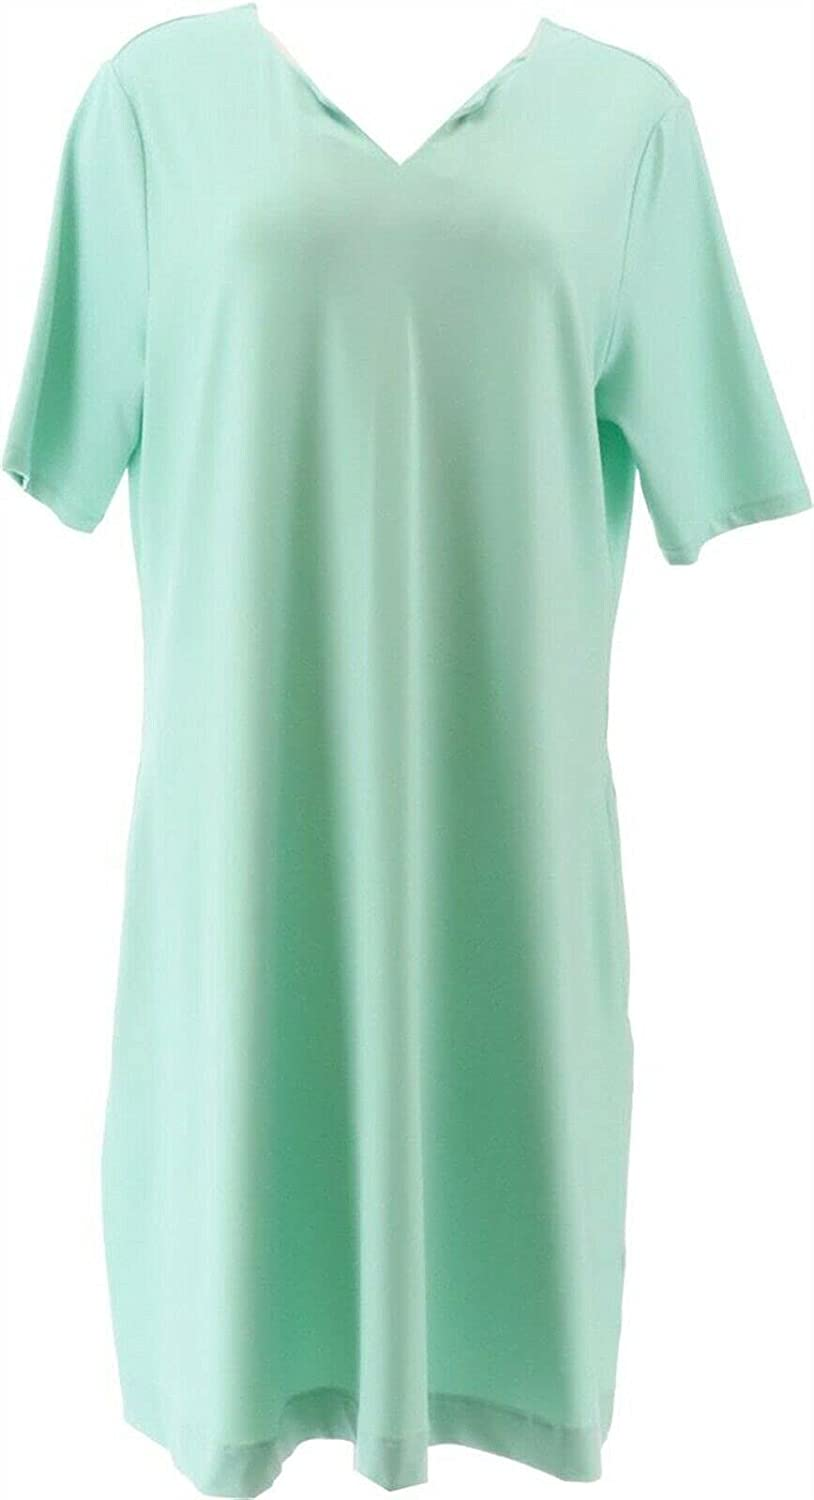 Large special price Elizabeth Clarke Knit Fit Flare Mint A375116 Dress 35% OFF StainTech